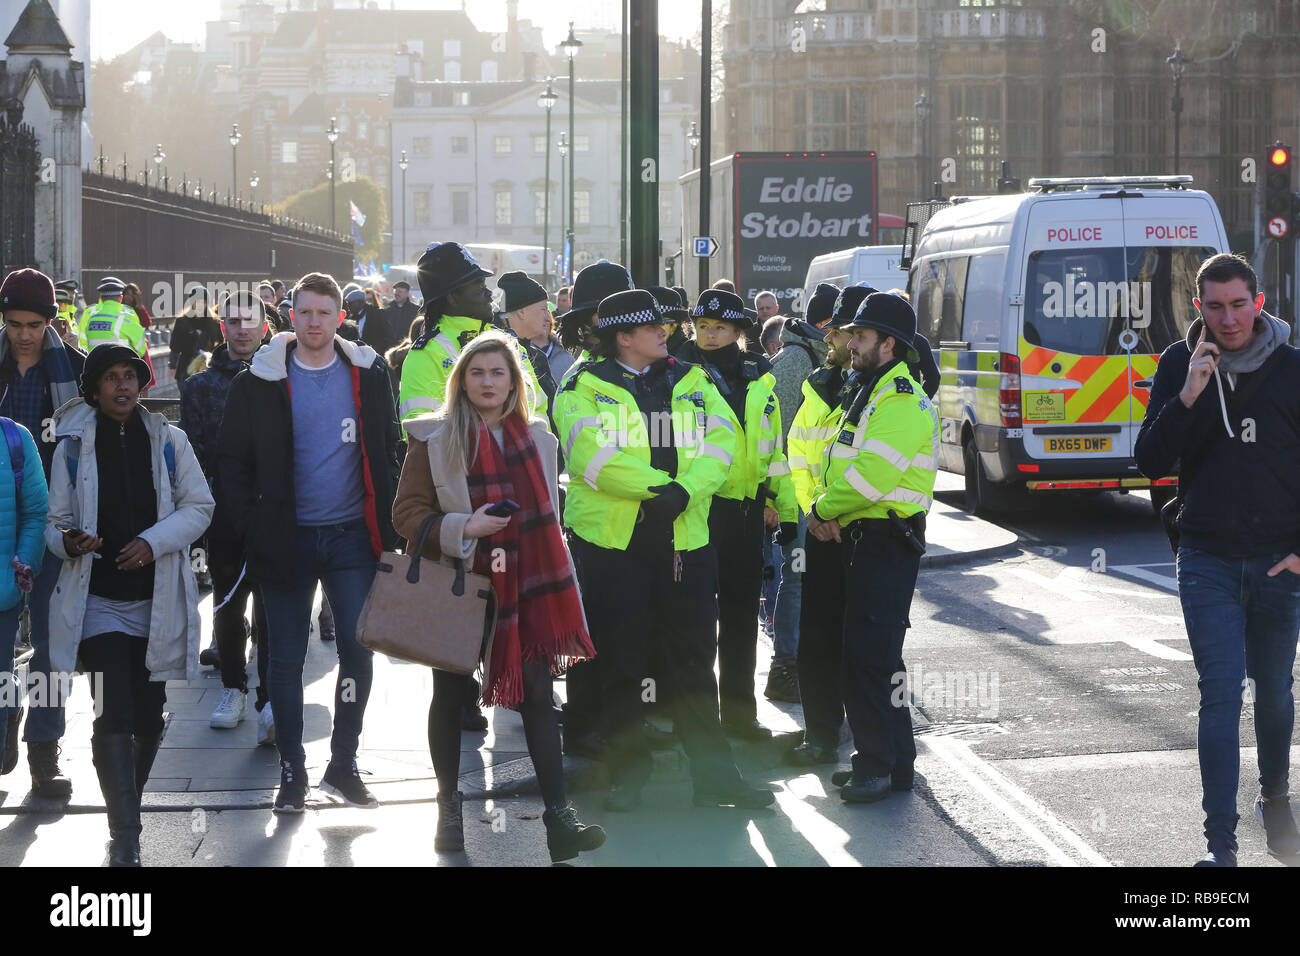 London, UK. 8th Jan, 2019. Extras police officers seen outside the House of Parliament in Westminster.Anti-Brexit demonstrators gather outside the British Parliament a week before the MPs to vote on the finalized Brexit deal, MPs will vote on Theresa May's Brexit deal on 15 January. Credit: Dinendra Haria/SOPA Images/ZUMA Wire/Alamy Live News - Stock Image